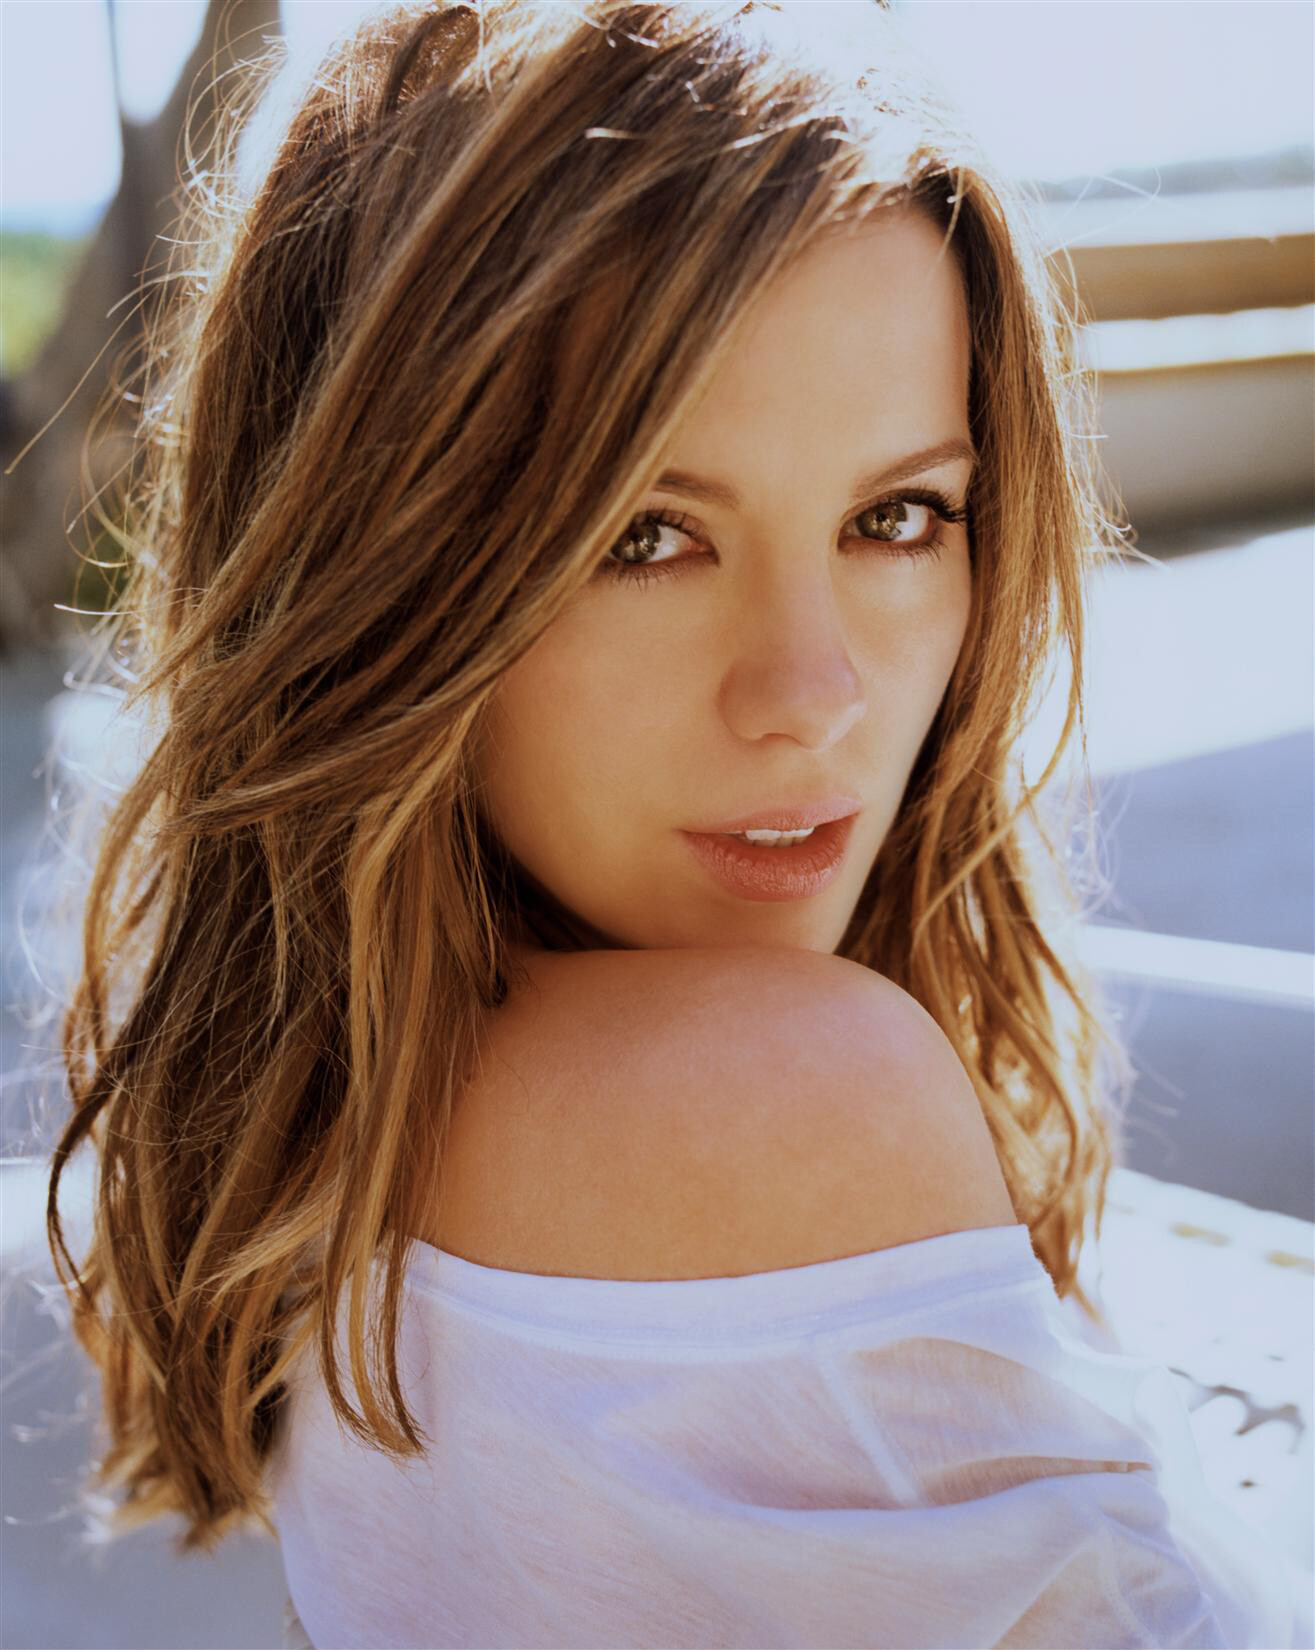 Kate Beckinsale Sexy fappenings.com 10